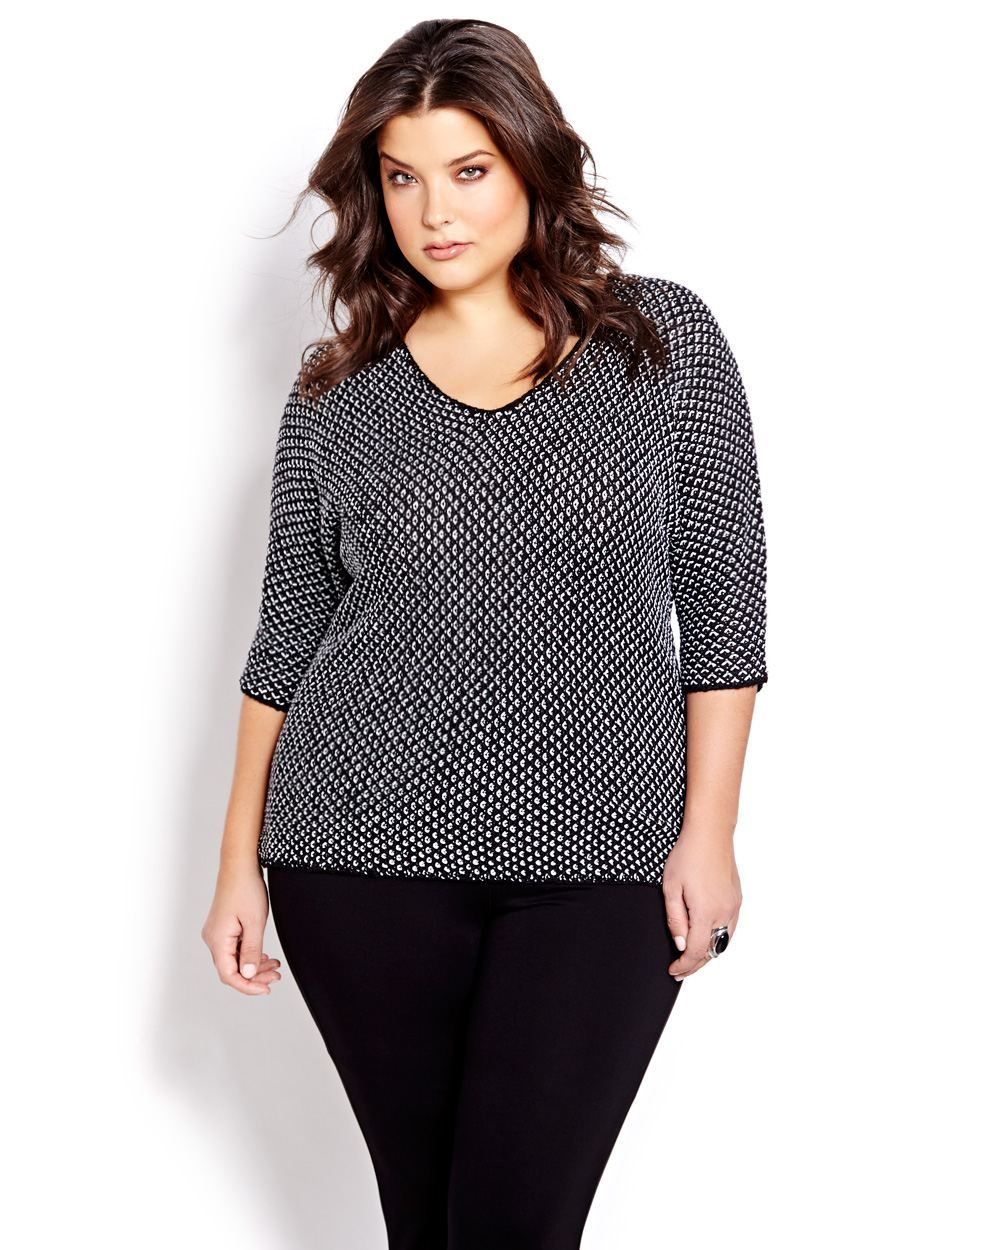 279a712a951 Hot new arrivals from Addition Elle Spring 2015. Michel Studio plus-size  collection